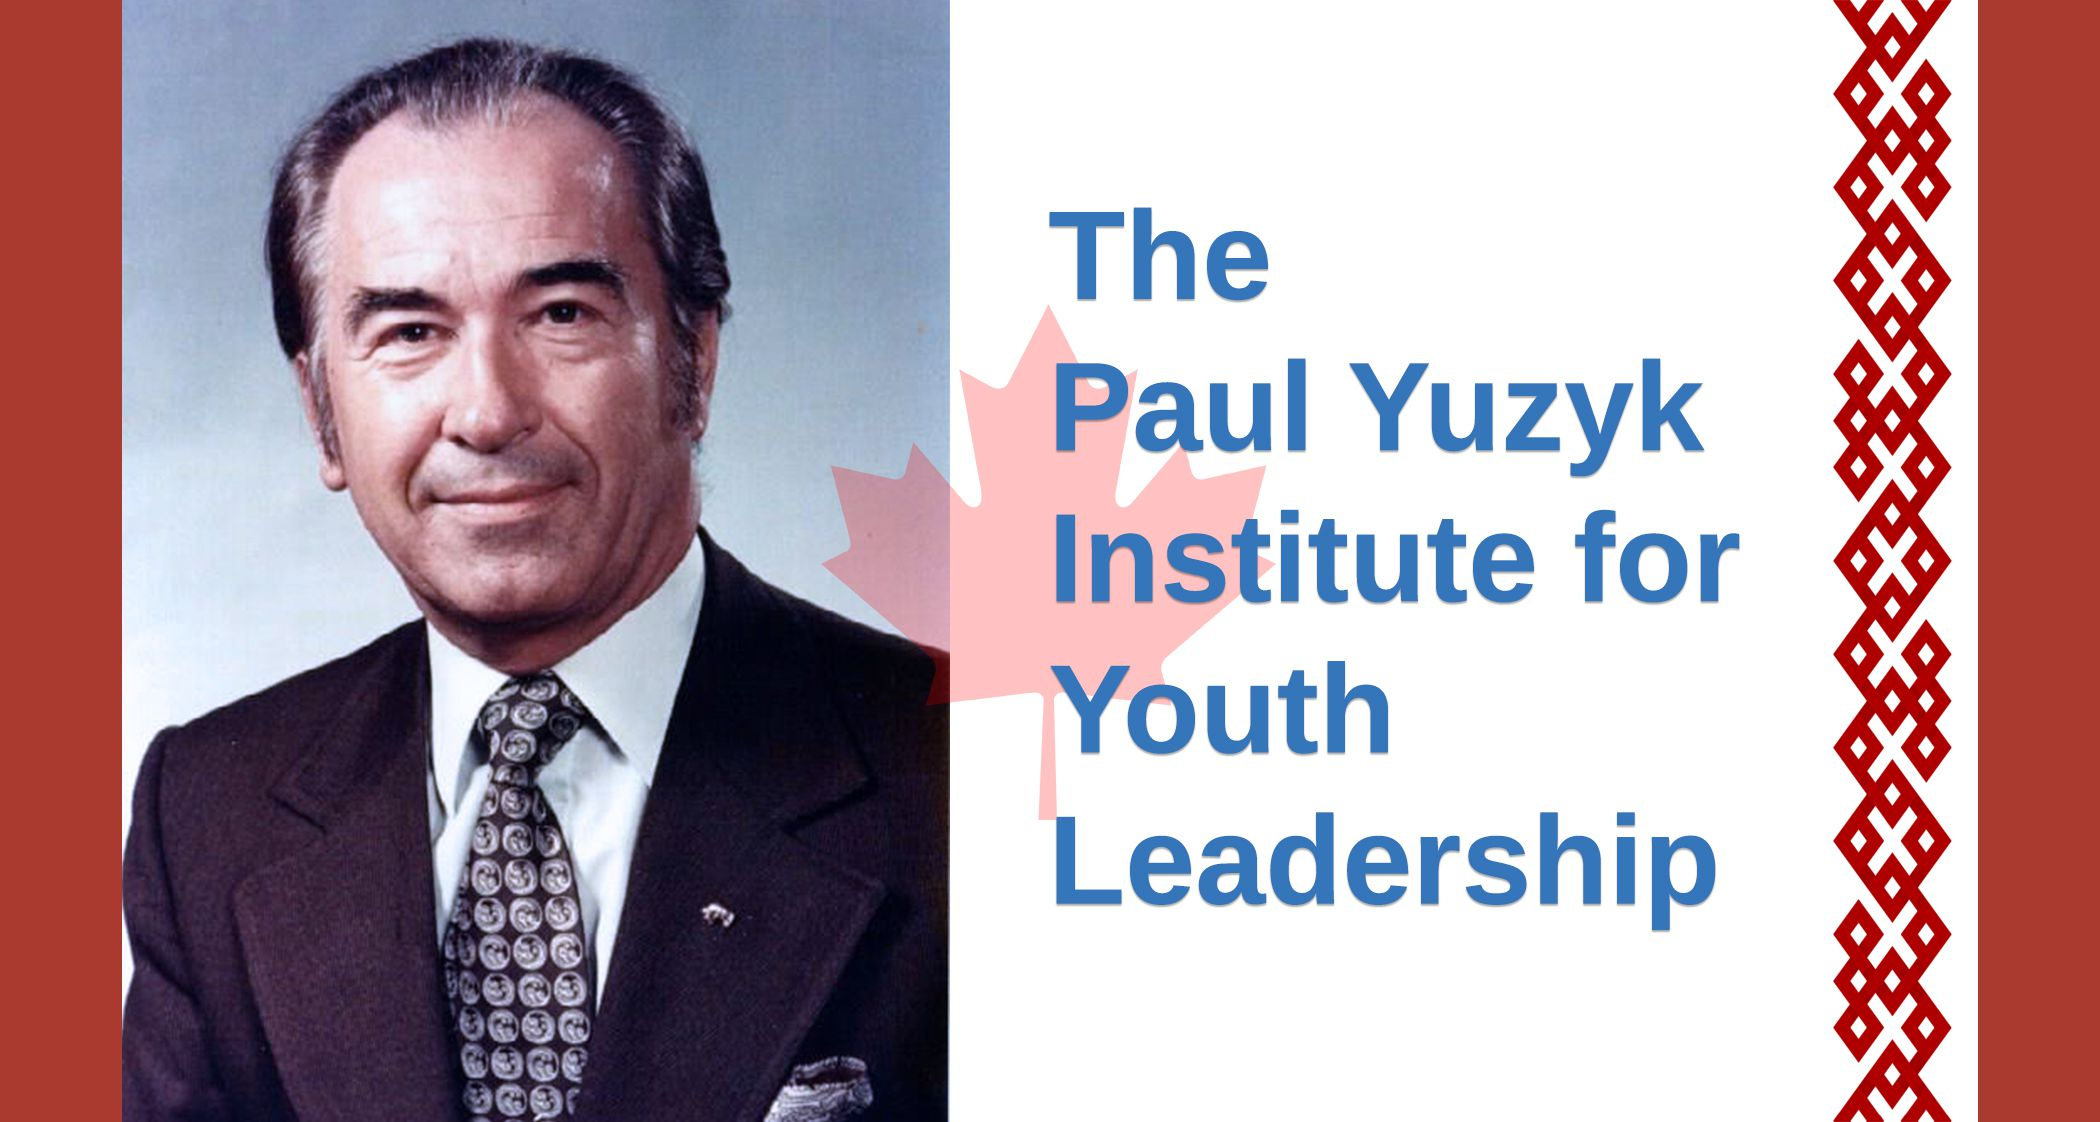 THE PAUL YUZYK INSTITUTE FOR YOUTH LEADERSHIP